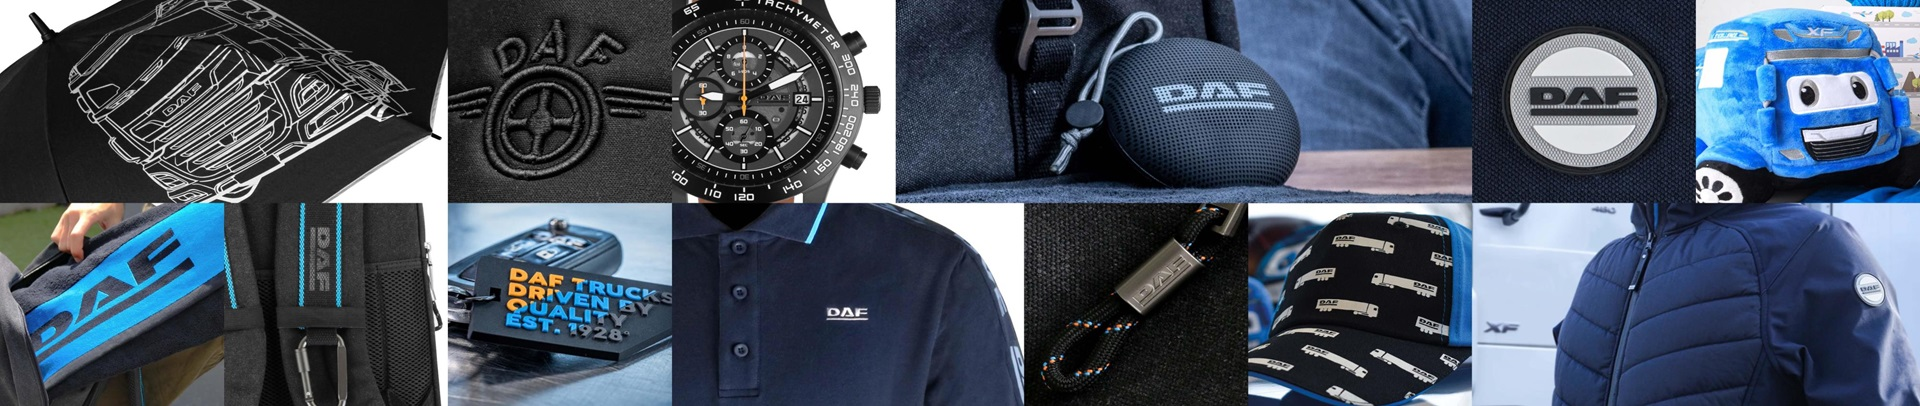 DAF-presents-its-new-merchandise-collection-01